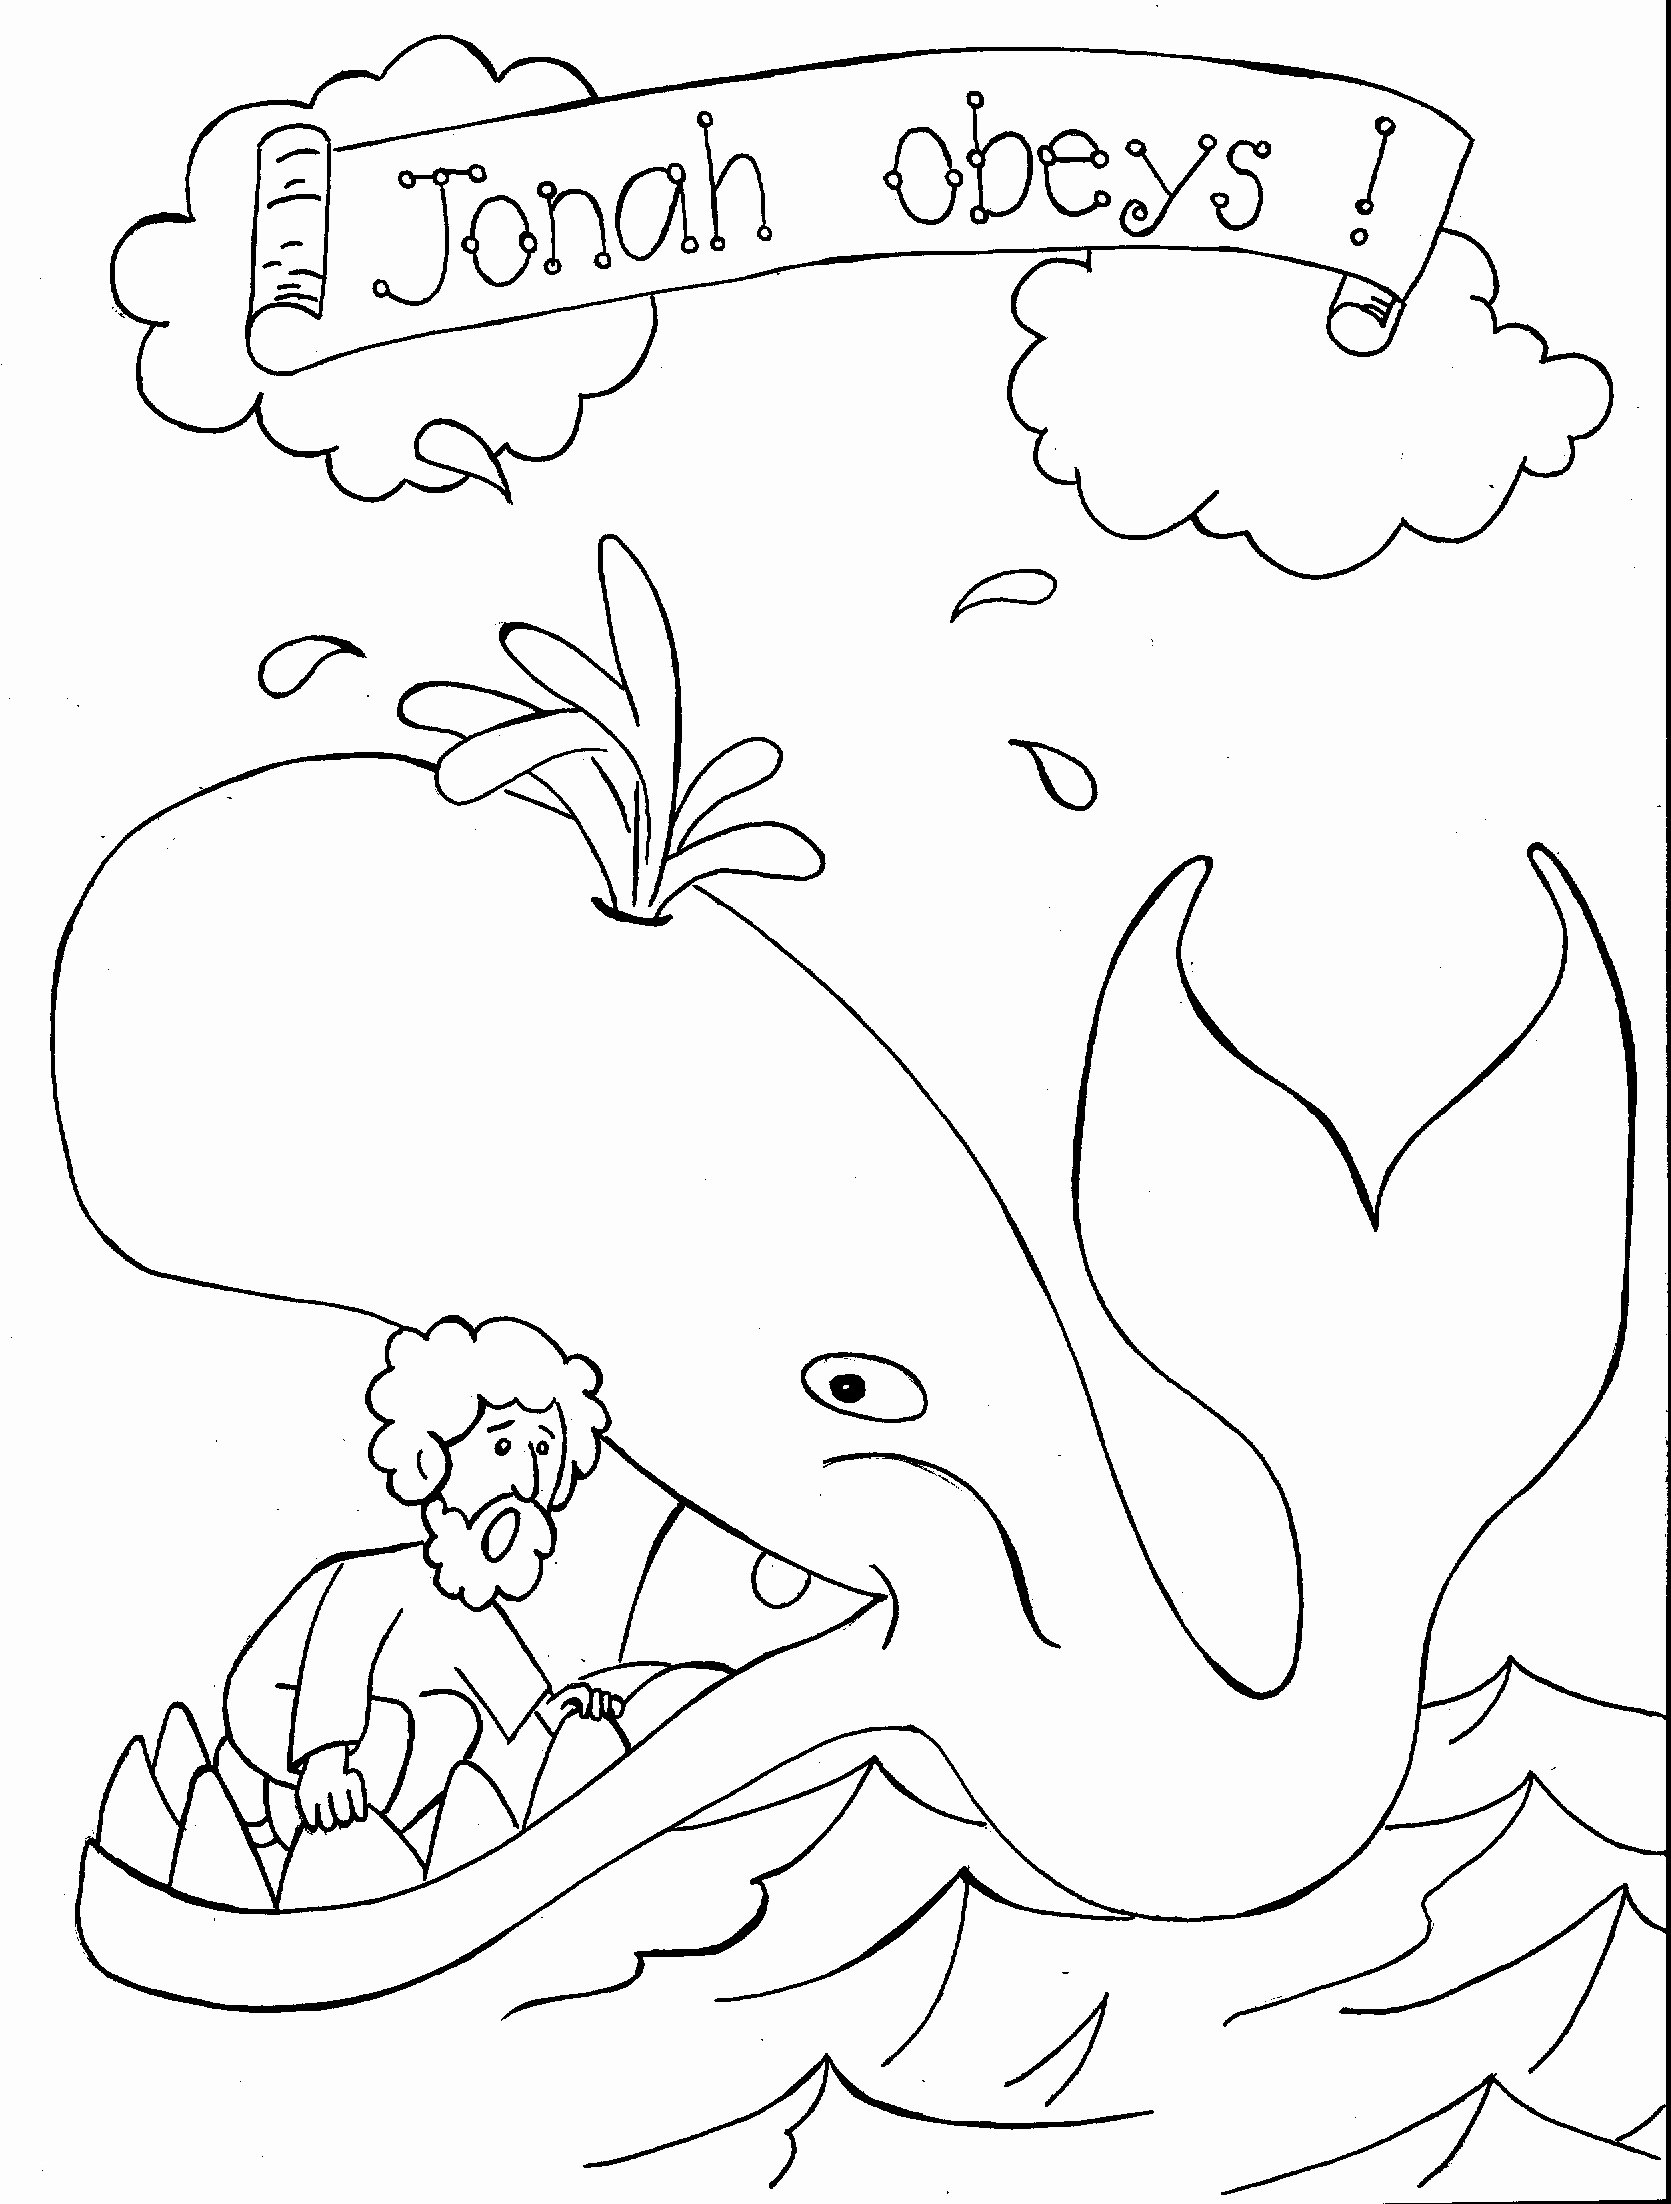 bible story coloring pages free Collection-Bible Story Coloring Books Beautiful Bible Coloring Pages For Adults Best Best Od Dog Coloring Pages Bible Story Coloring Books Amazing Bible Story 12-m